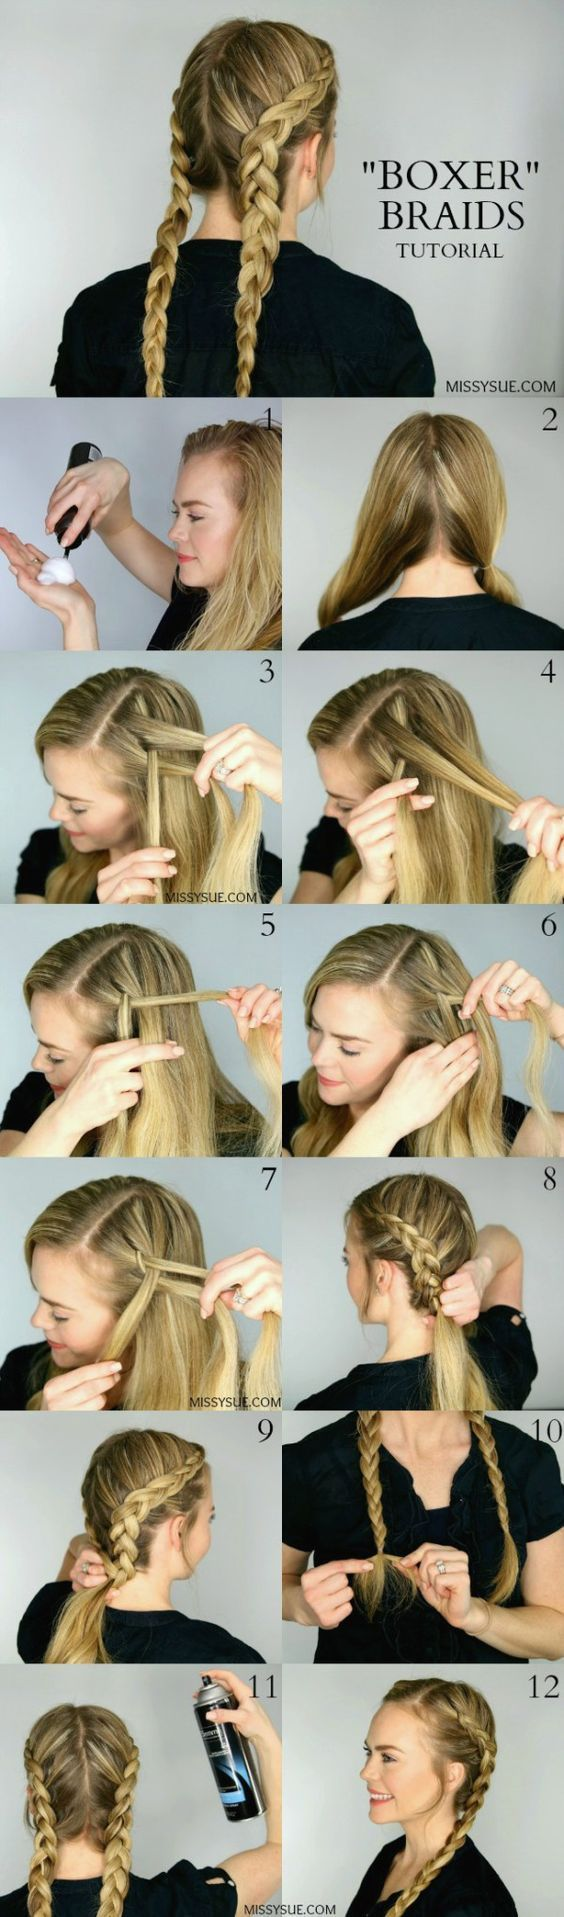 awesome 45 Step by Step Hair Tutorials For The Beauties In Town! - Trend To Wear by http://www.dana-hairstyles.top/hair-tutorials/45-step-by-step-hair-tutorials-for-the-beauties-in-town-trend-to-wear-5/